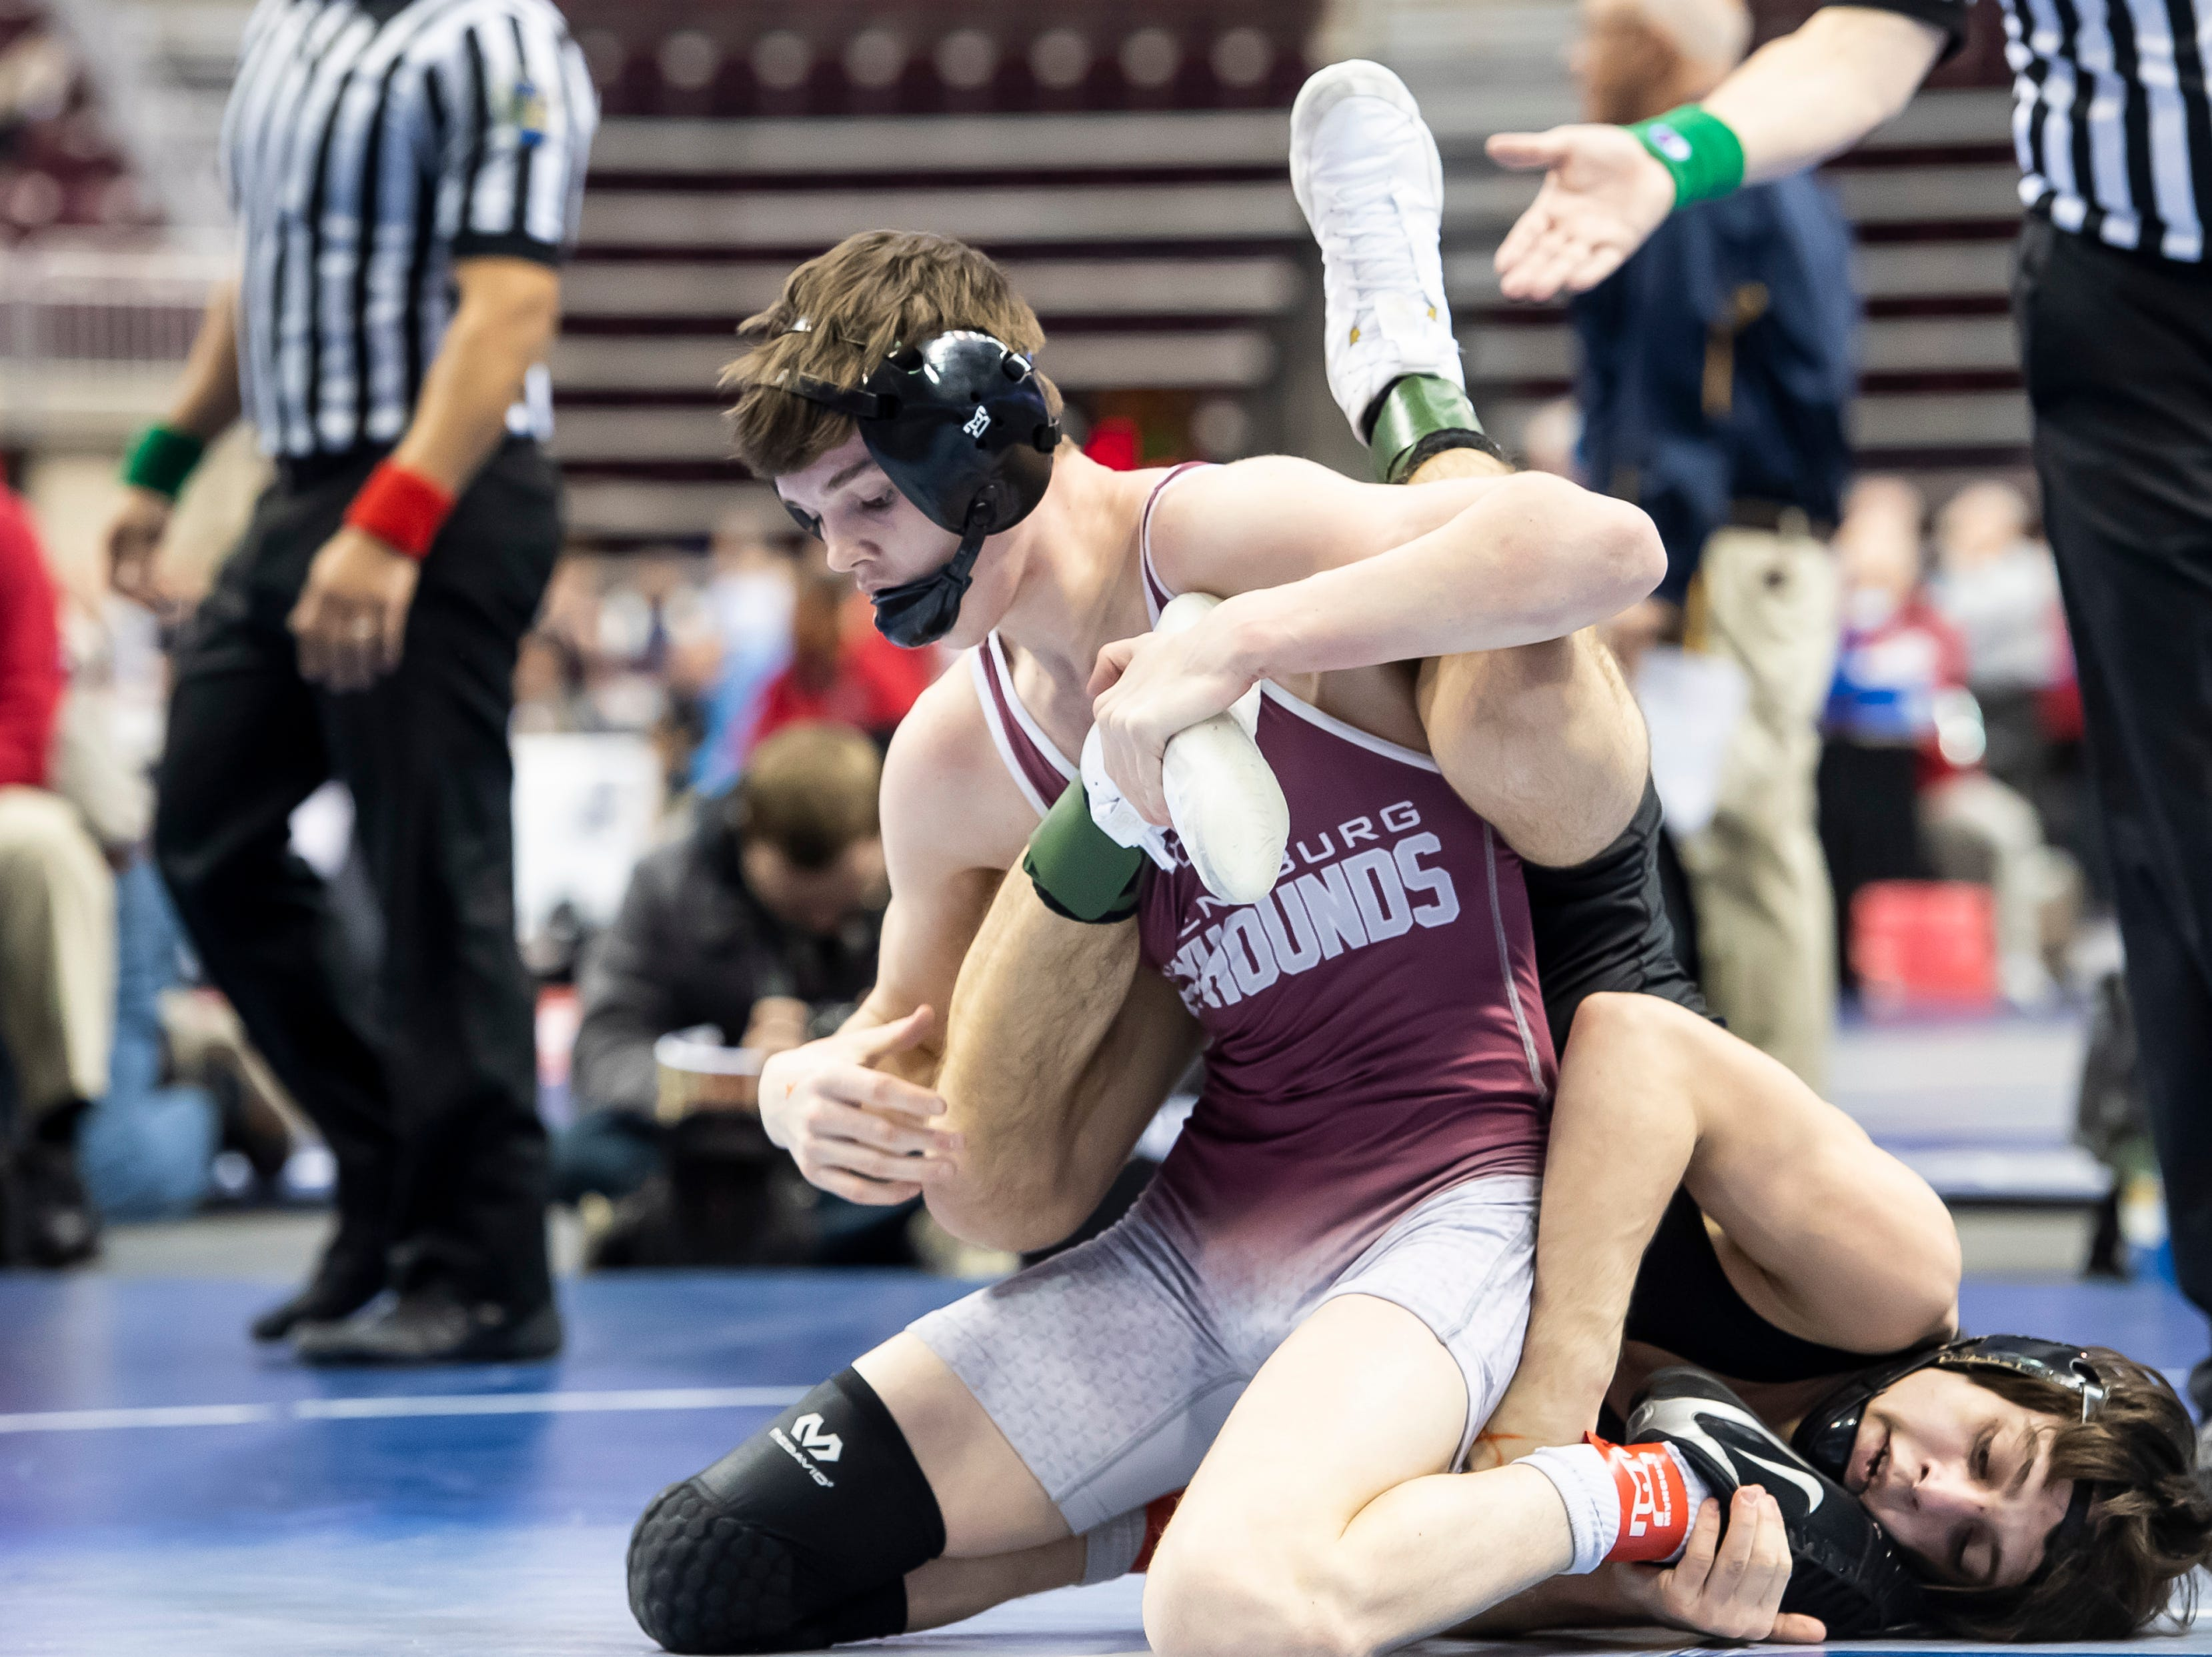 Shippensburg's Jeffrey Russell, front, wrestles William Tennet's T.J. England during a 3A 120-pound second round consolation bout at the Giant Center in Hershey Friday, March 8, 2019. Haines won by a 4-2 decision.